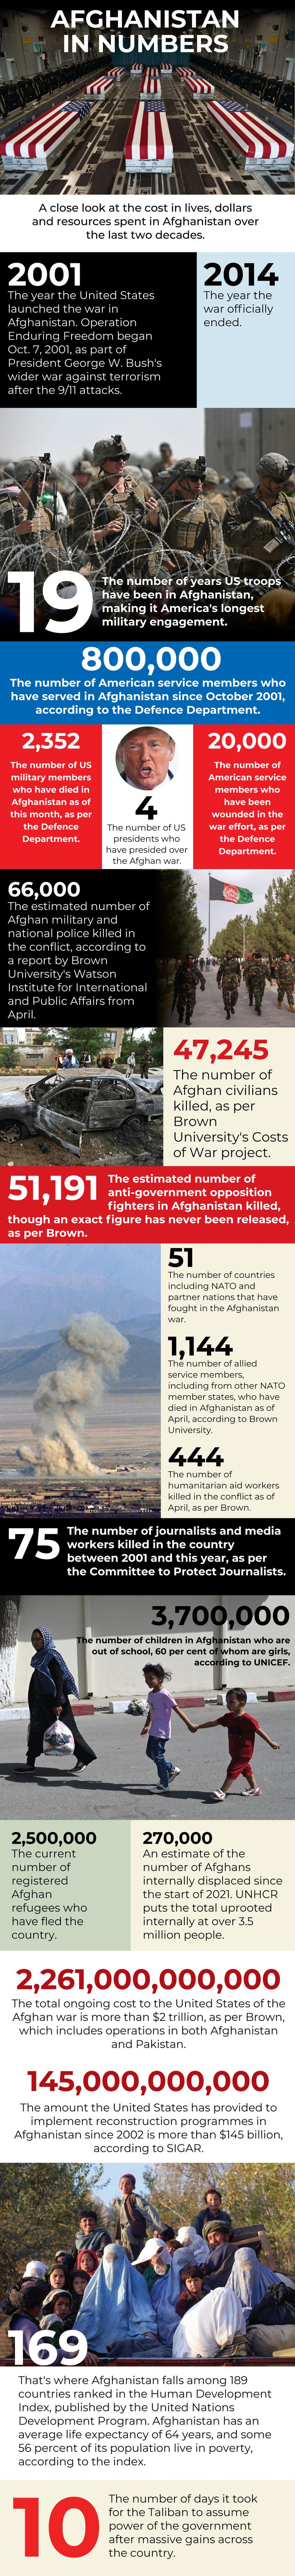 Afghanistan graphic numbers